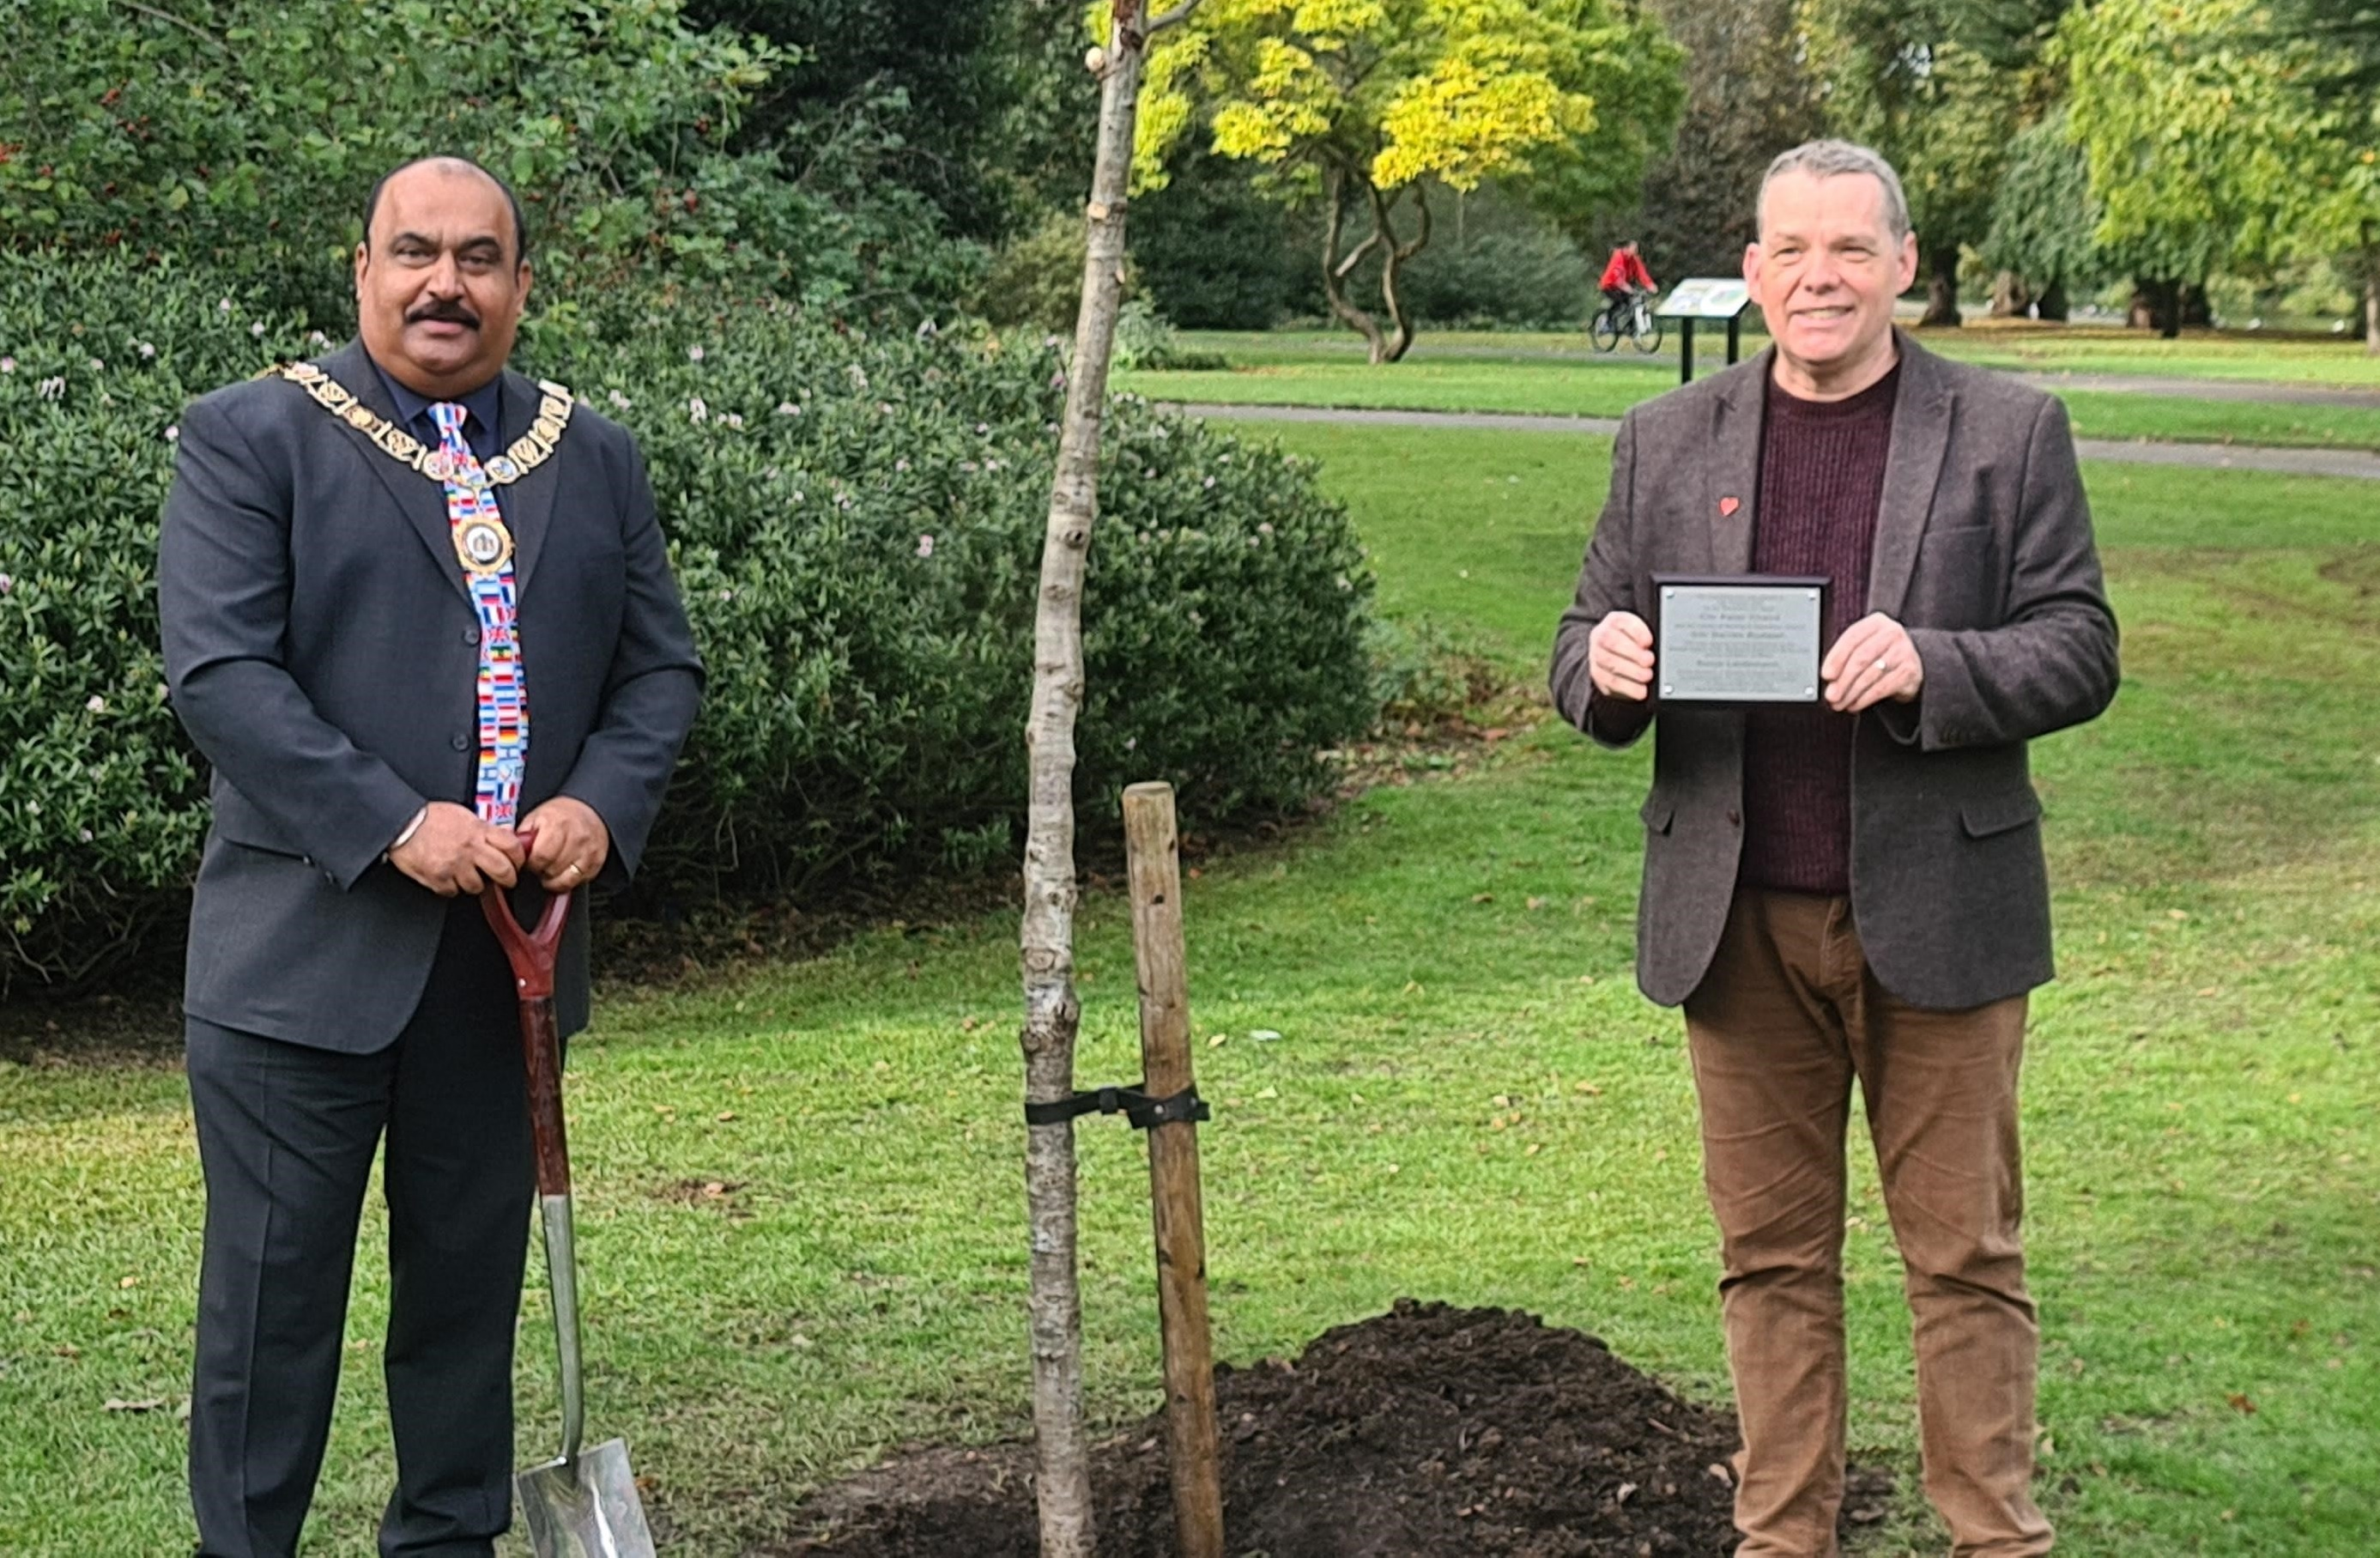 Mayor and Leader of the council by a planted tree with plaque